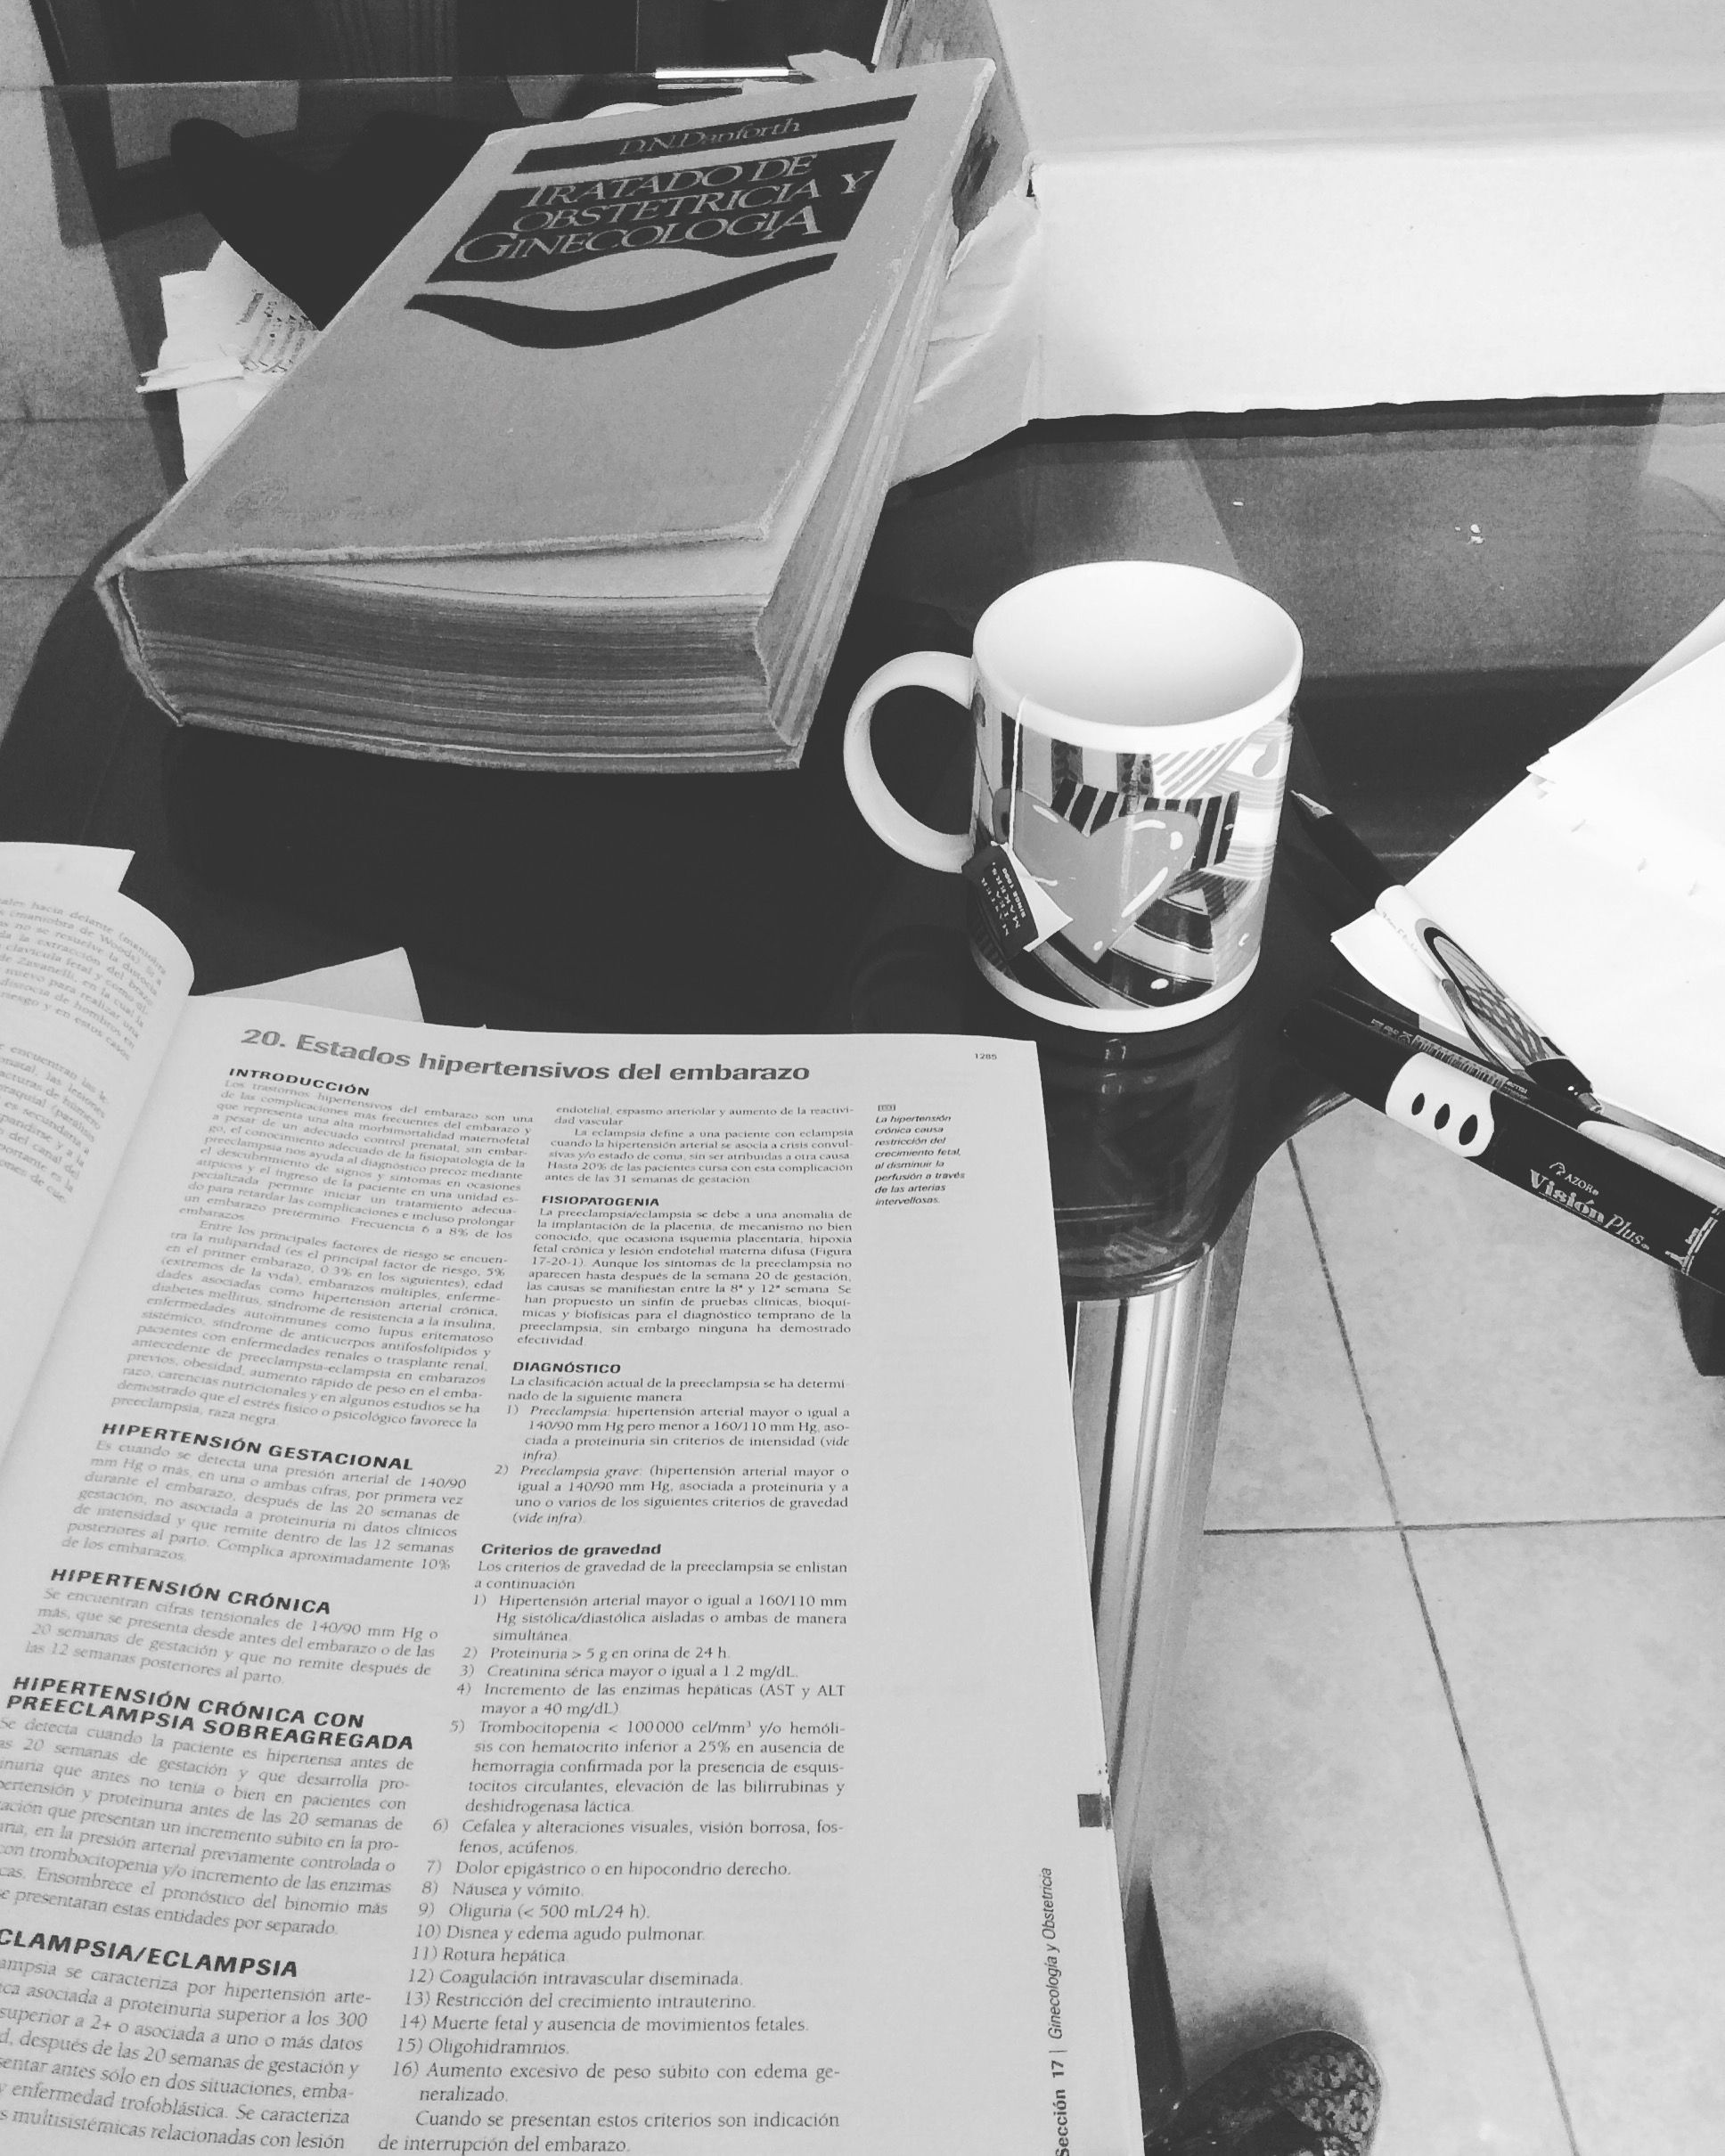 its a good day to start again :D   #running - #study - #eat - #study - #sleep -REPEAT!   #ENARM #CTO #EXARMED #MEDICINE #LIFESTYLE #STUDY #WEEKEND #GYNECOLOGY #OBSTETRICS